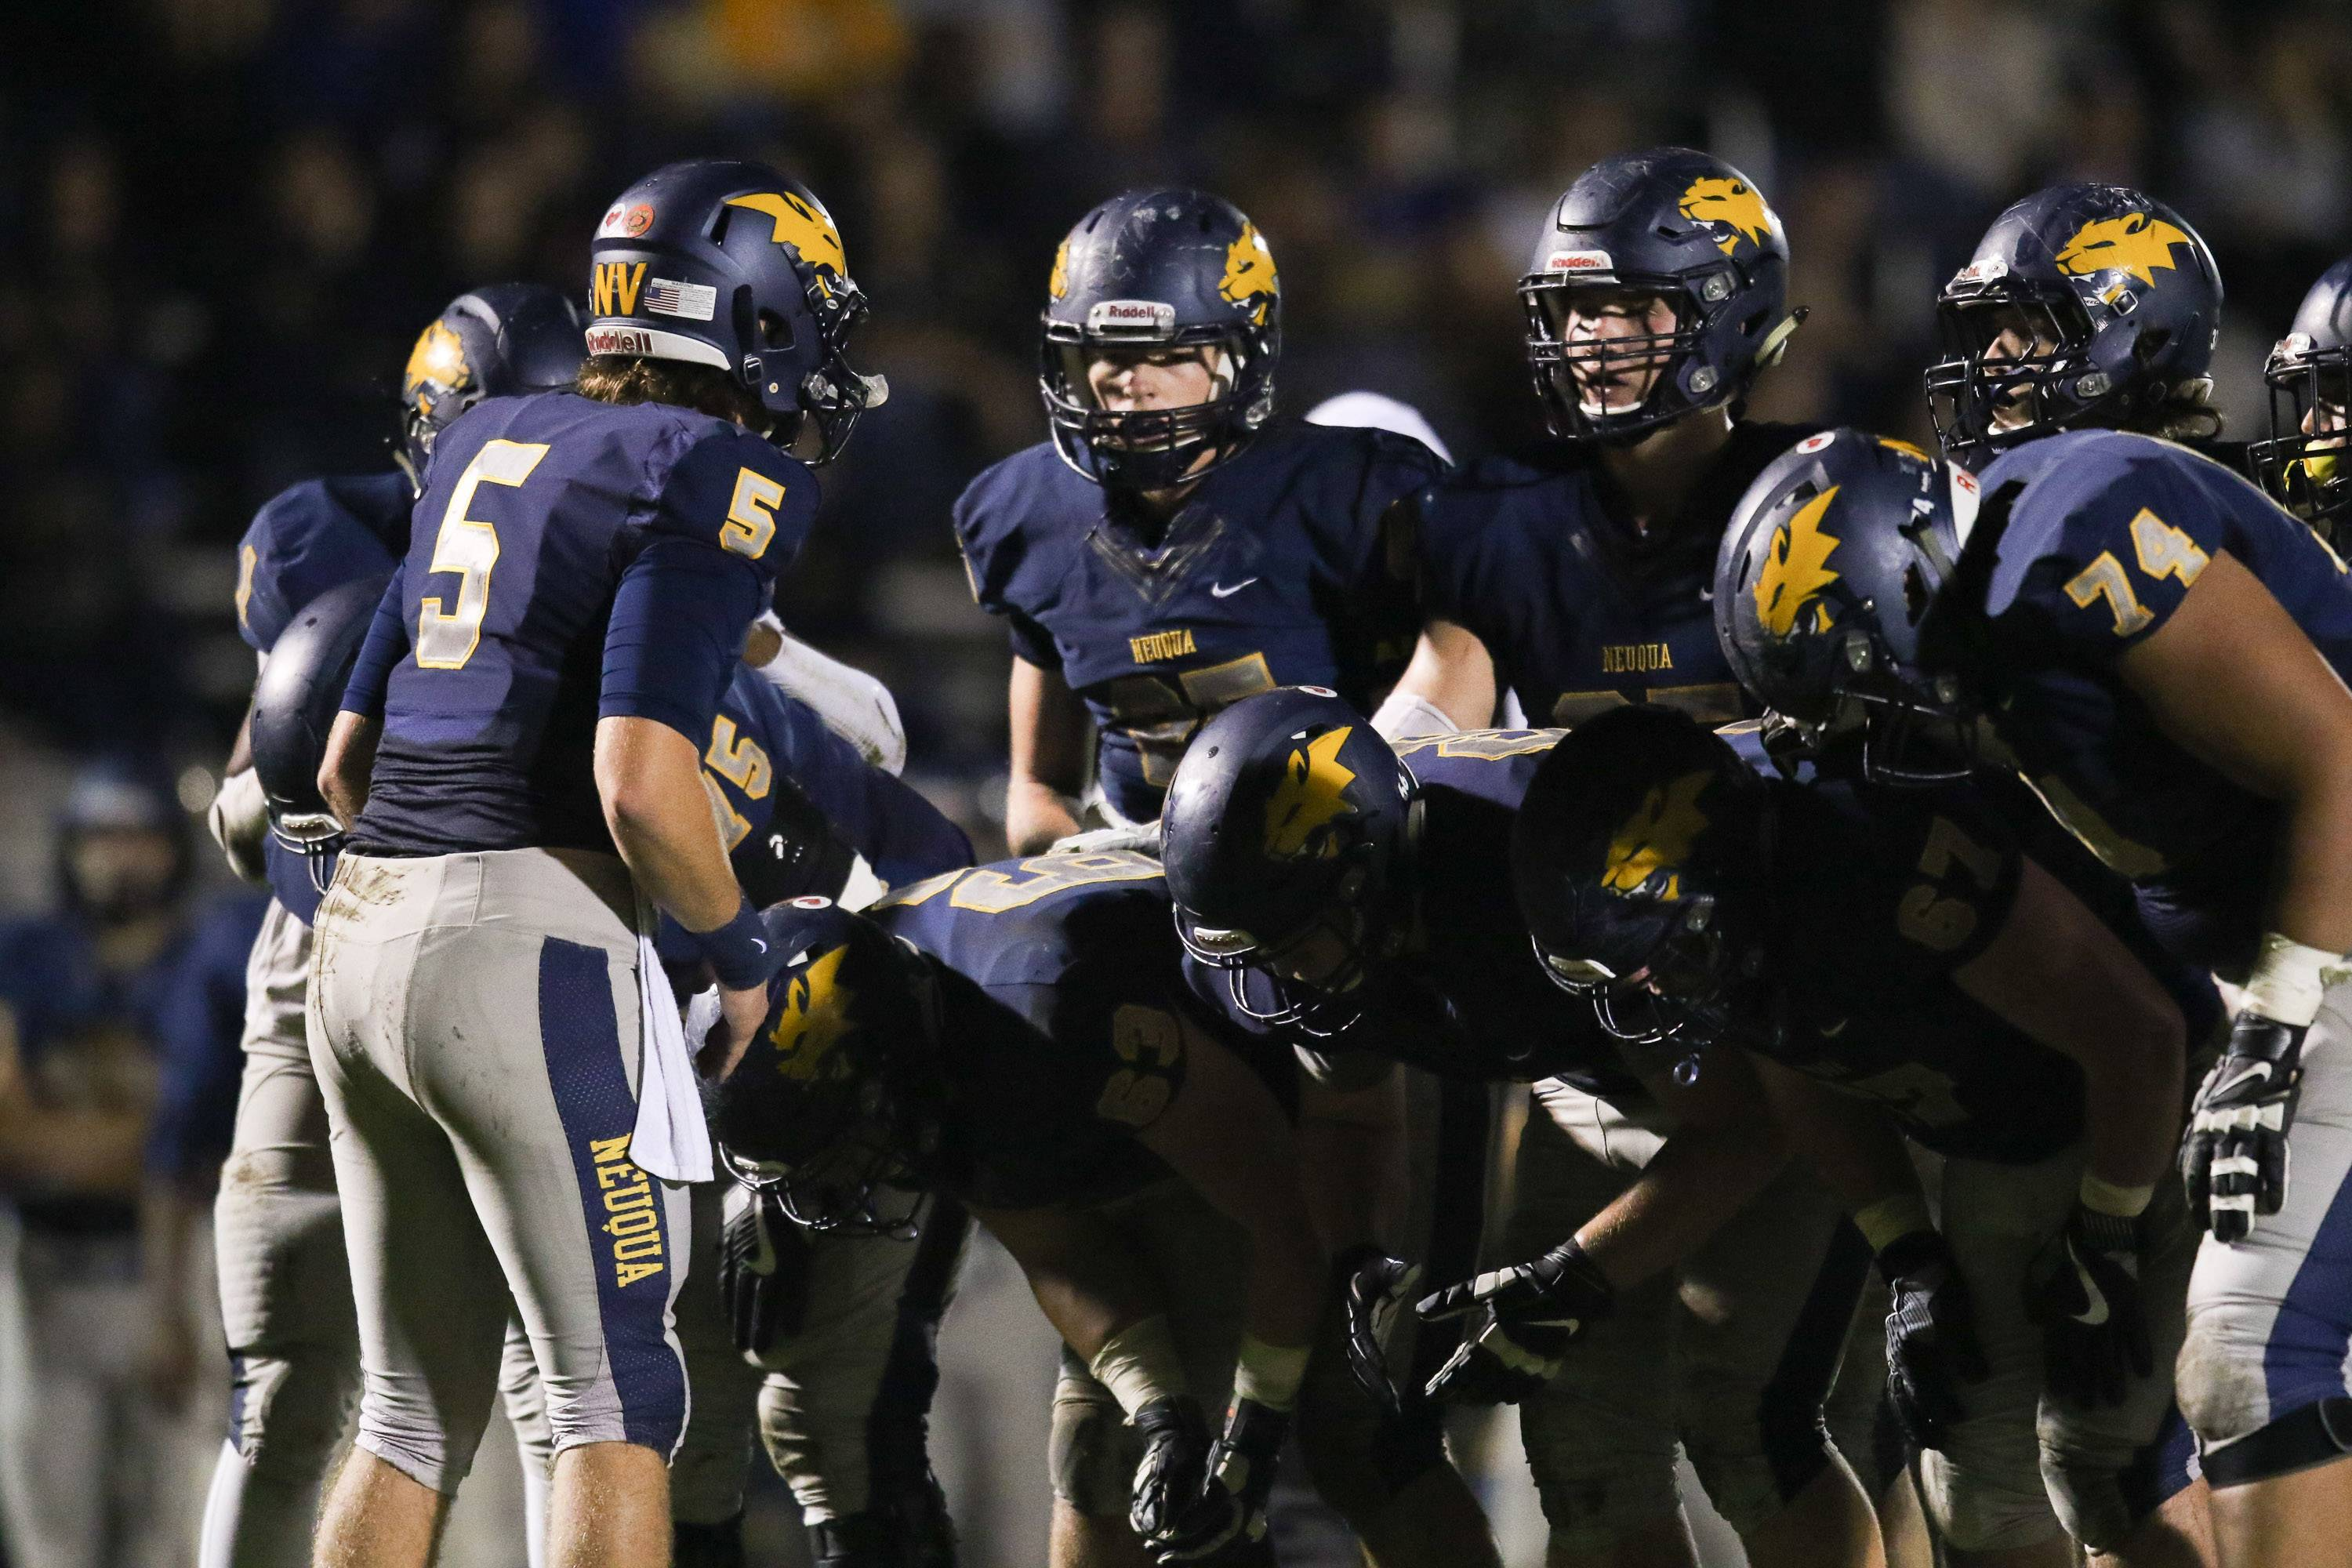 Neuqua Valley quarterback Jack Bastable (5) talks to his team during a huddle against Glenbard West at Neuqua Valley High School in Naperville, IL on Saturday, October 29, 2016